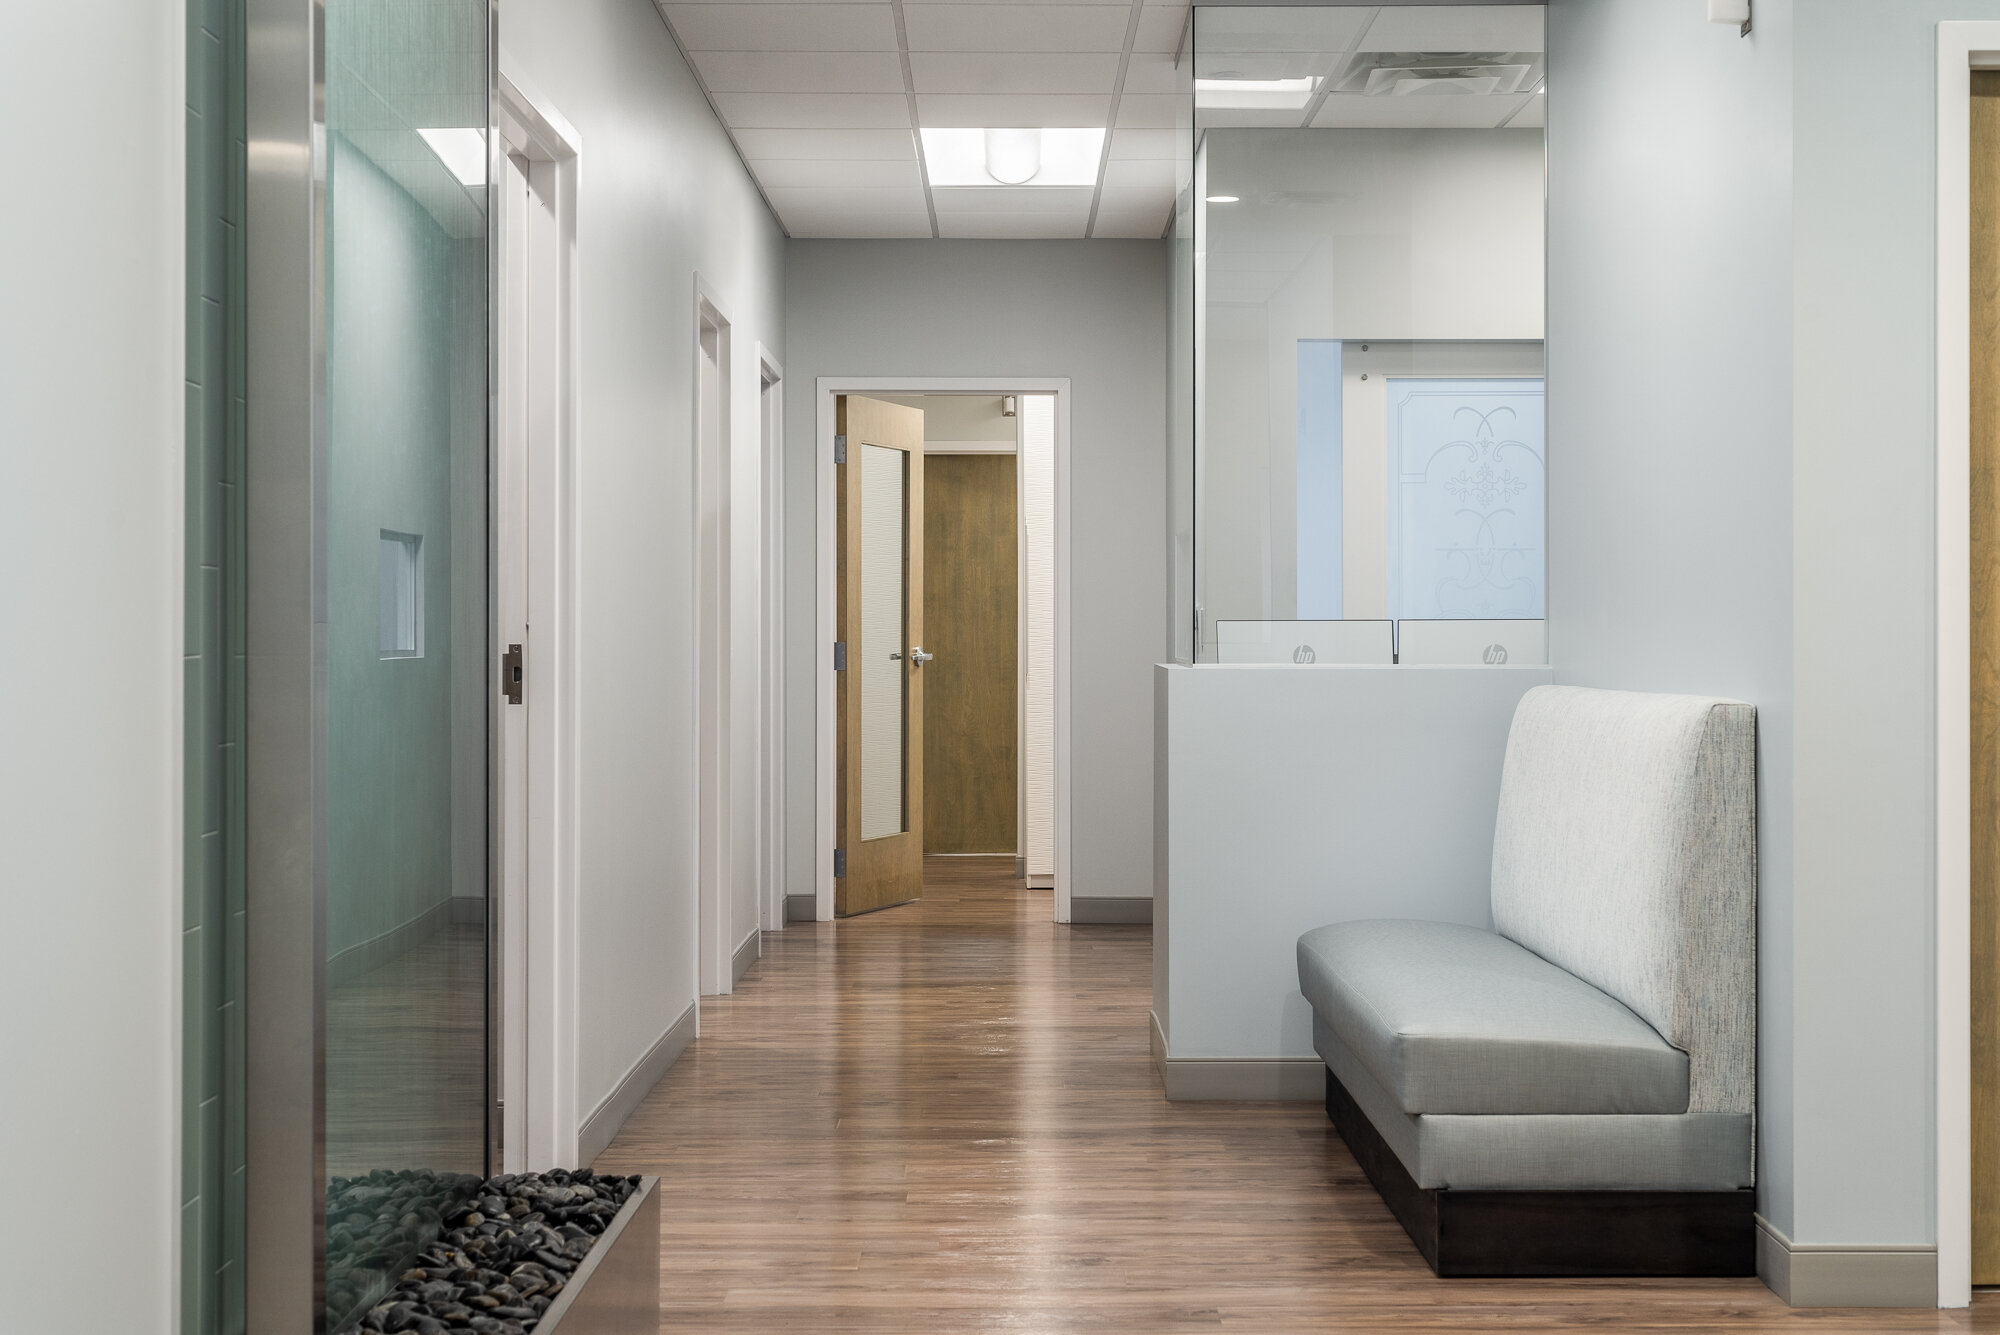 Micamy Design Studio_Interior Design_Faben Obstetrics and Gynelcology_North Florida_Riverplace_San Marco_Healthcare_Office_Medical_Exam Room_Renovation_Patcraft_Crossville_ArcCom.jpg